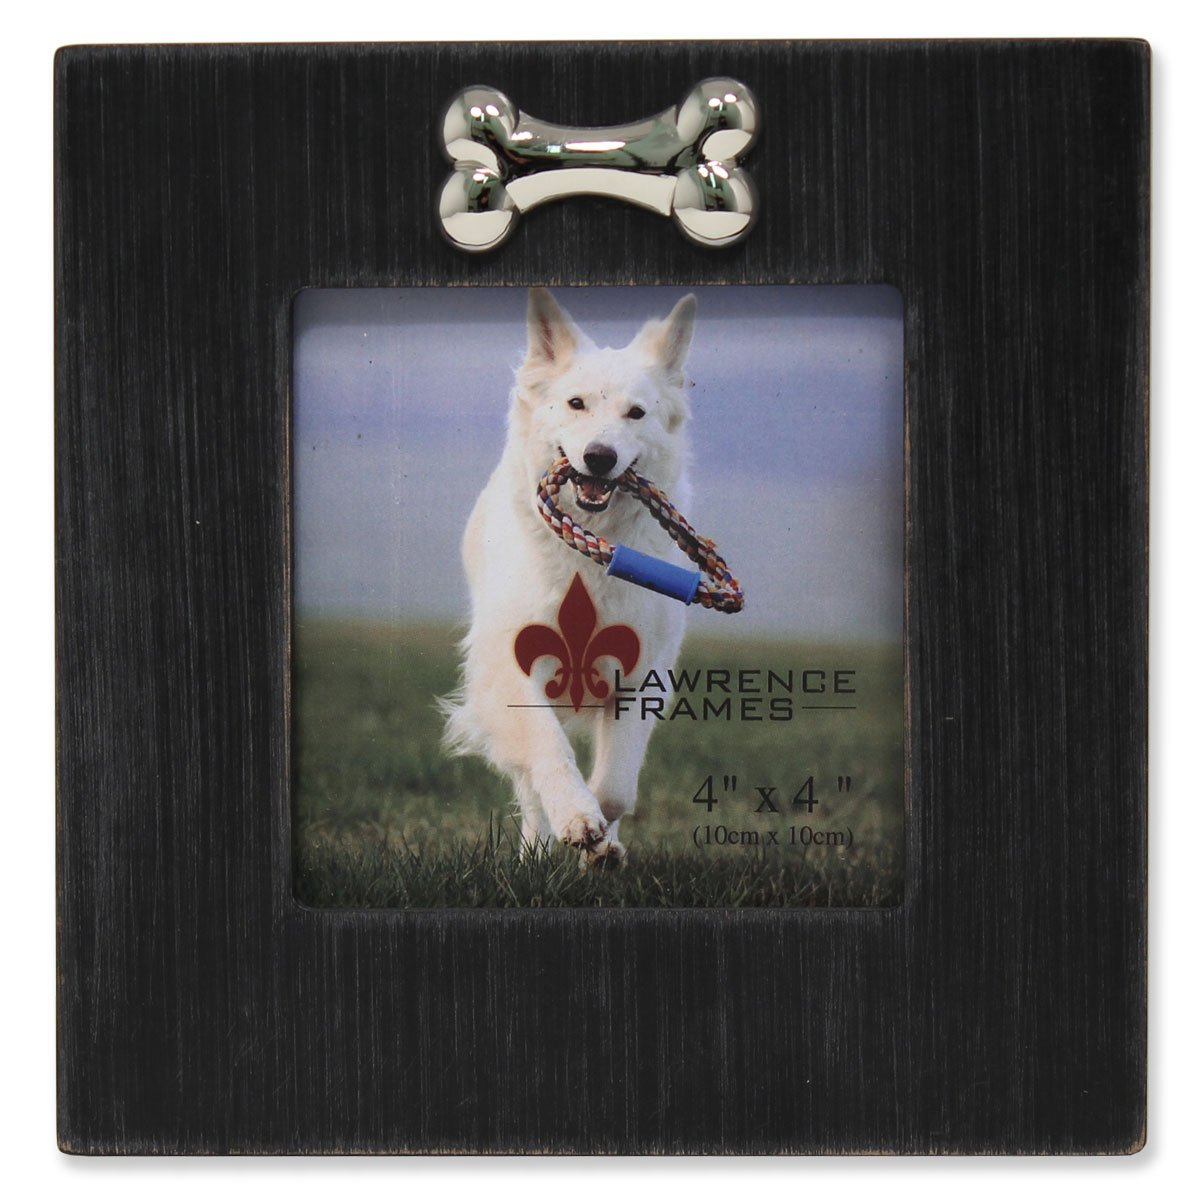 Amazon.com - Lawrence Frames Wash Dog Frame with Bone Ornament, 4 by ...